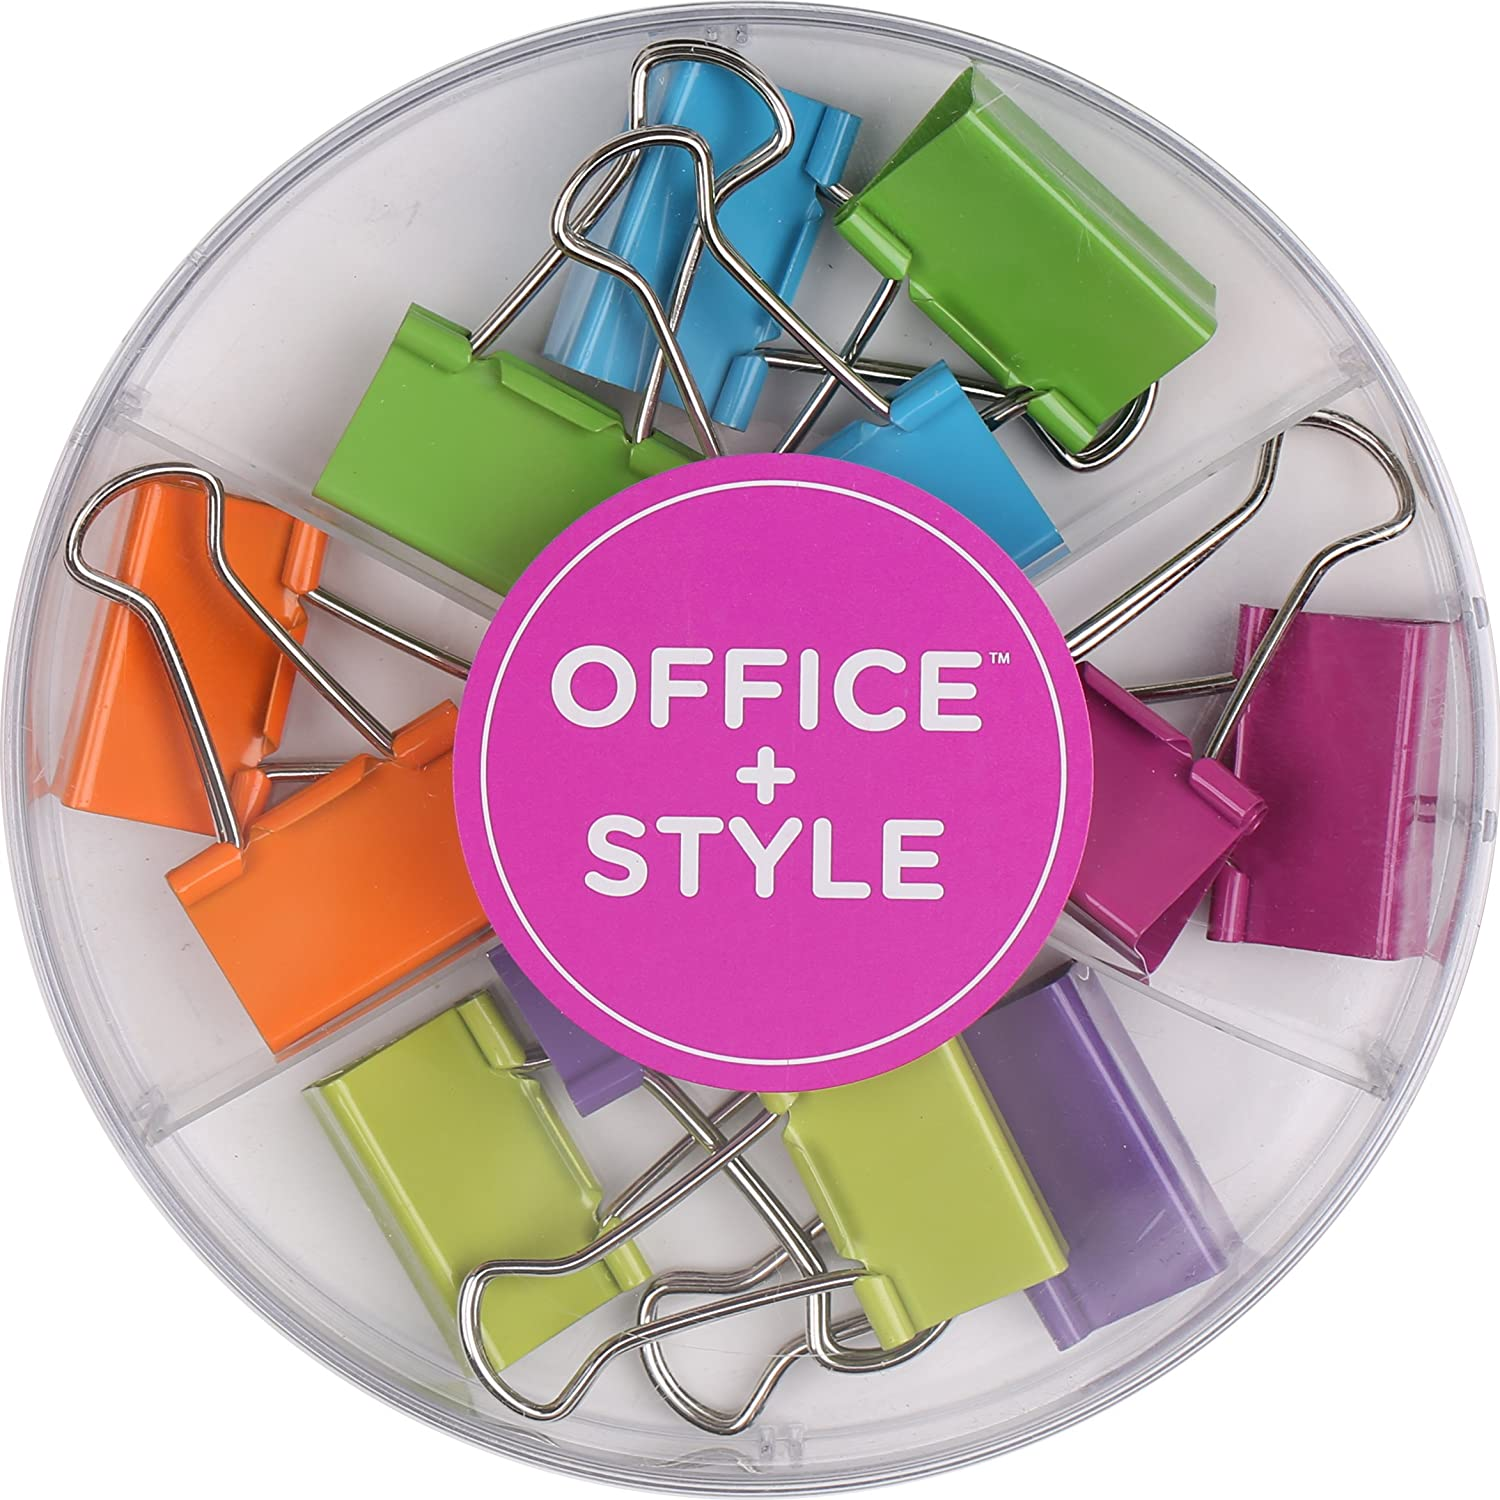 Office Style Medium Sized Binder Clips with Clear Plastic Storage Container - 12 Pieces - Large